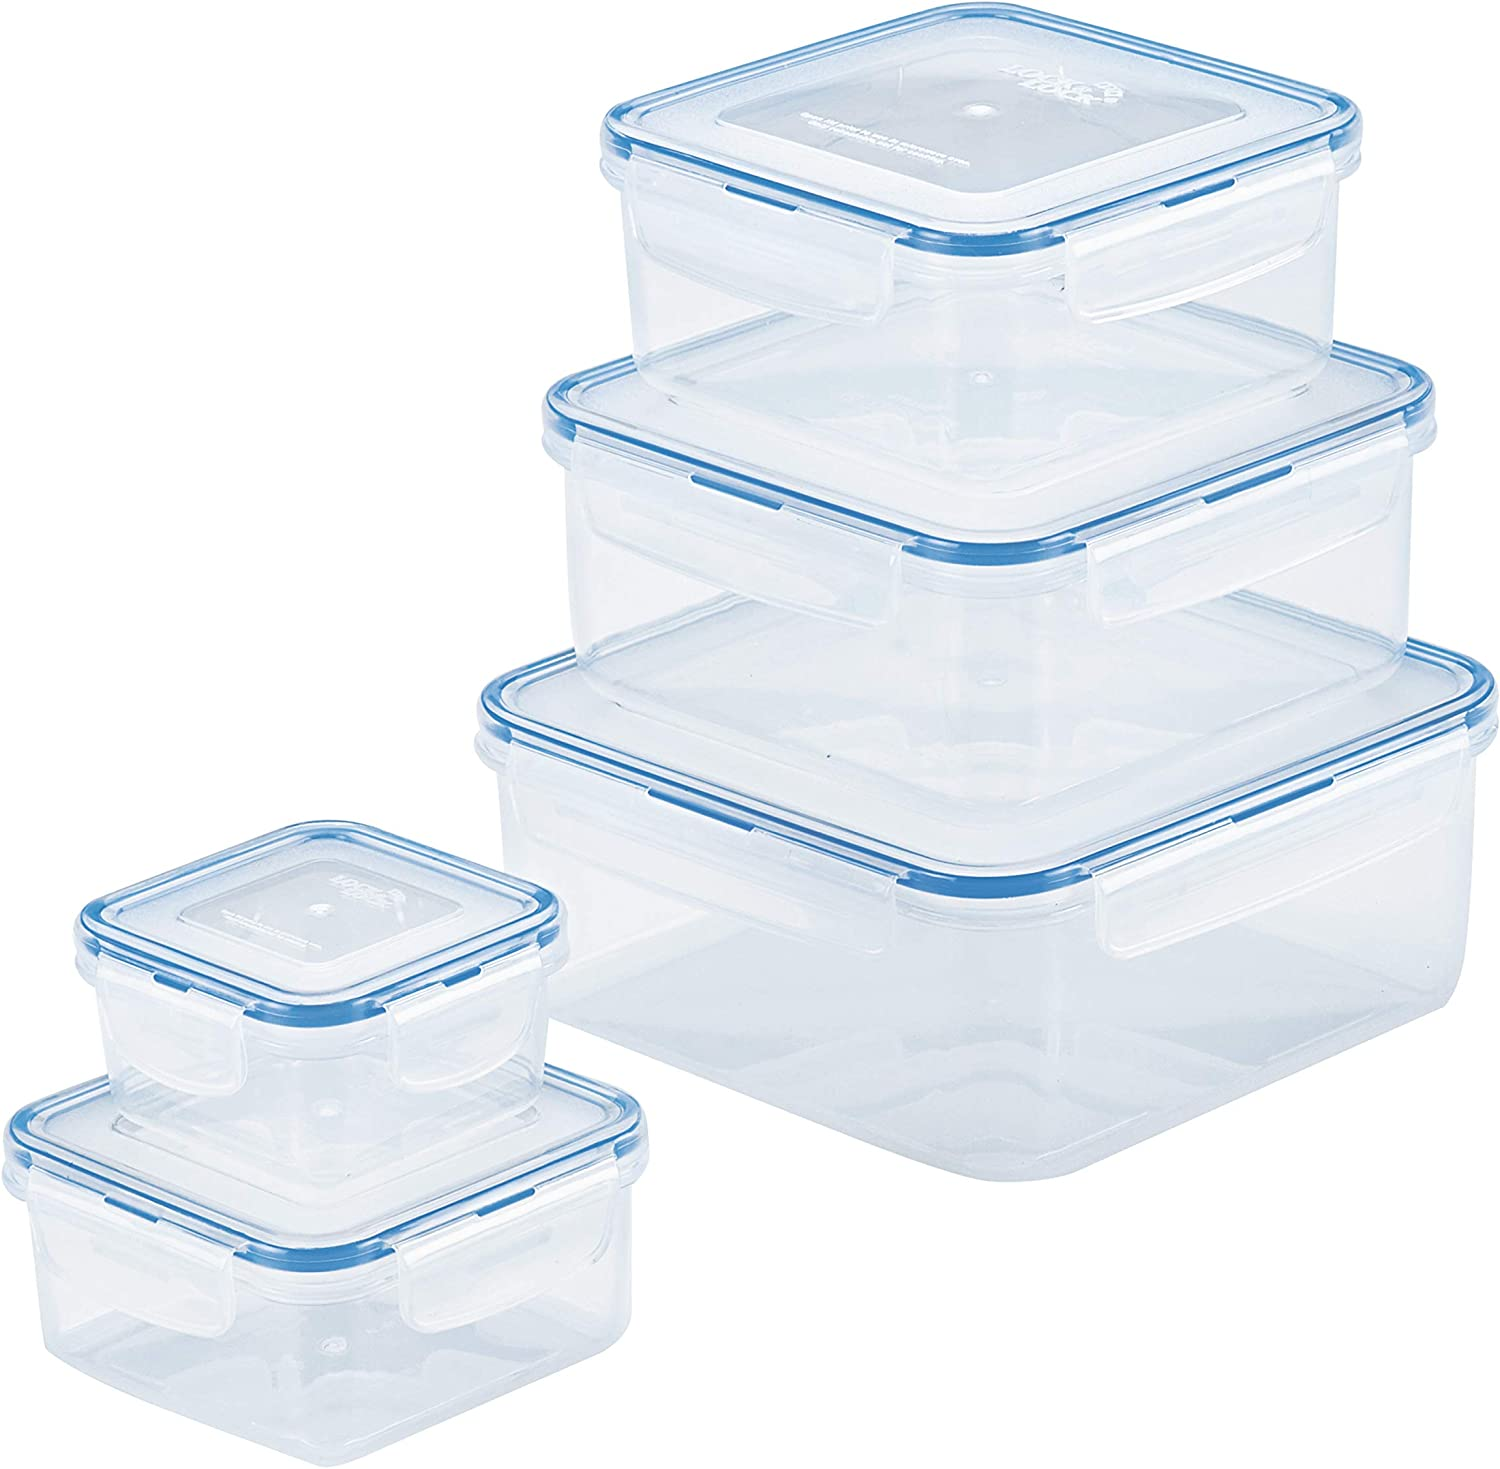 Lock & Lock HPL980CLQ5 Easy Essentials Storage Food Storage Container Set / Food Storage Bin Set - 10 Piece, Clear